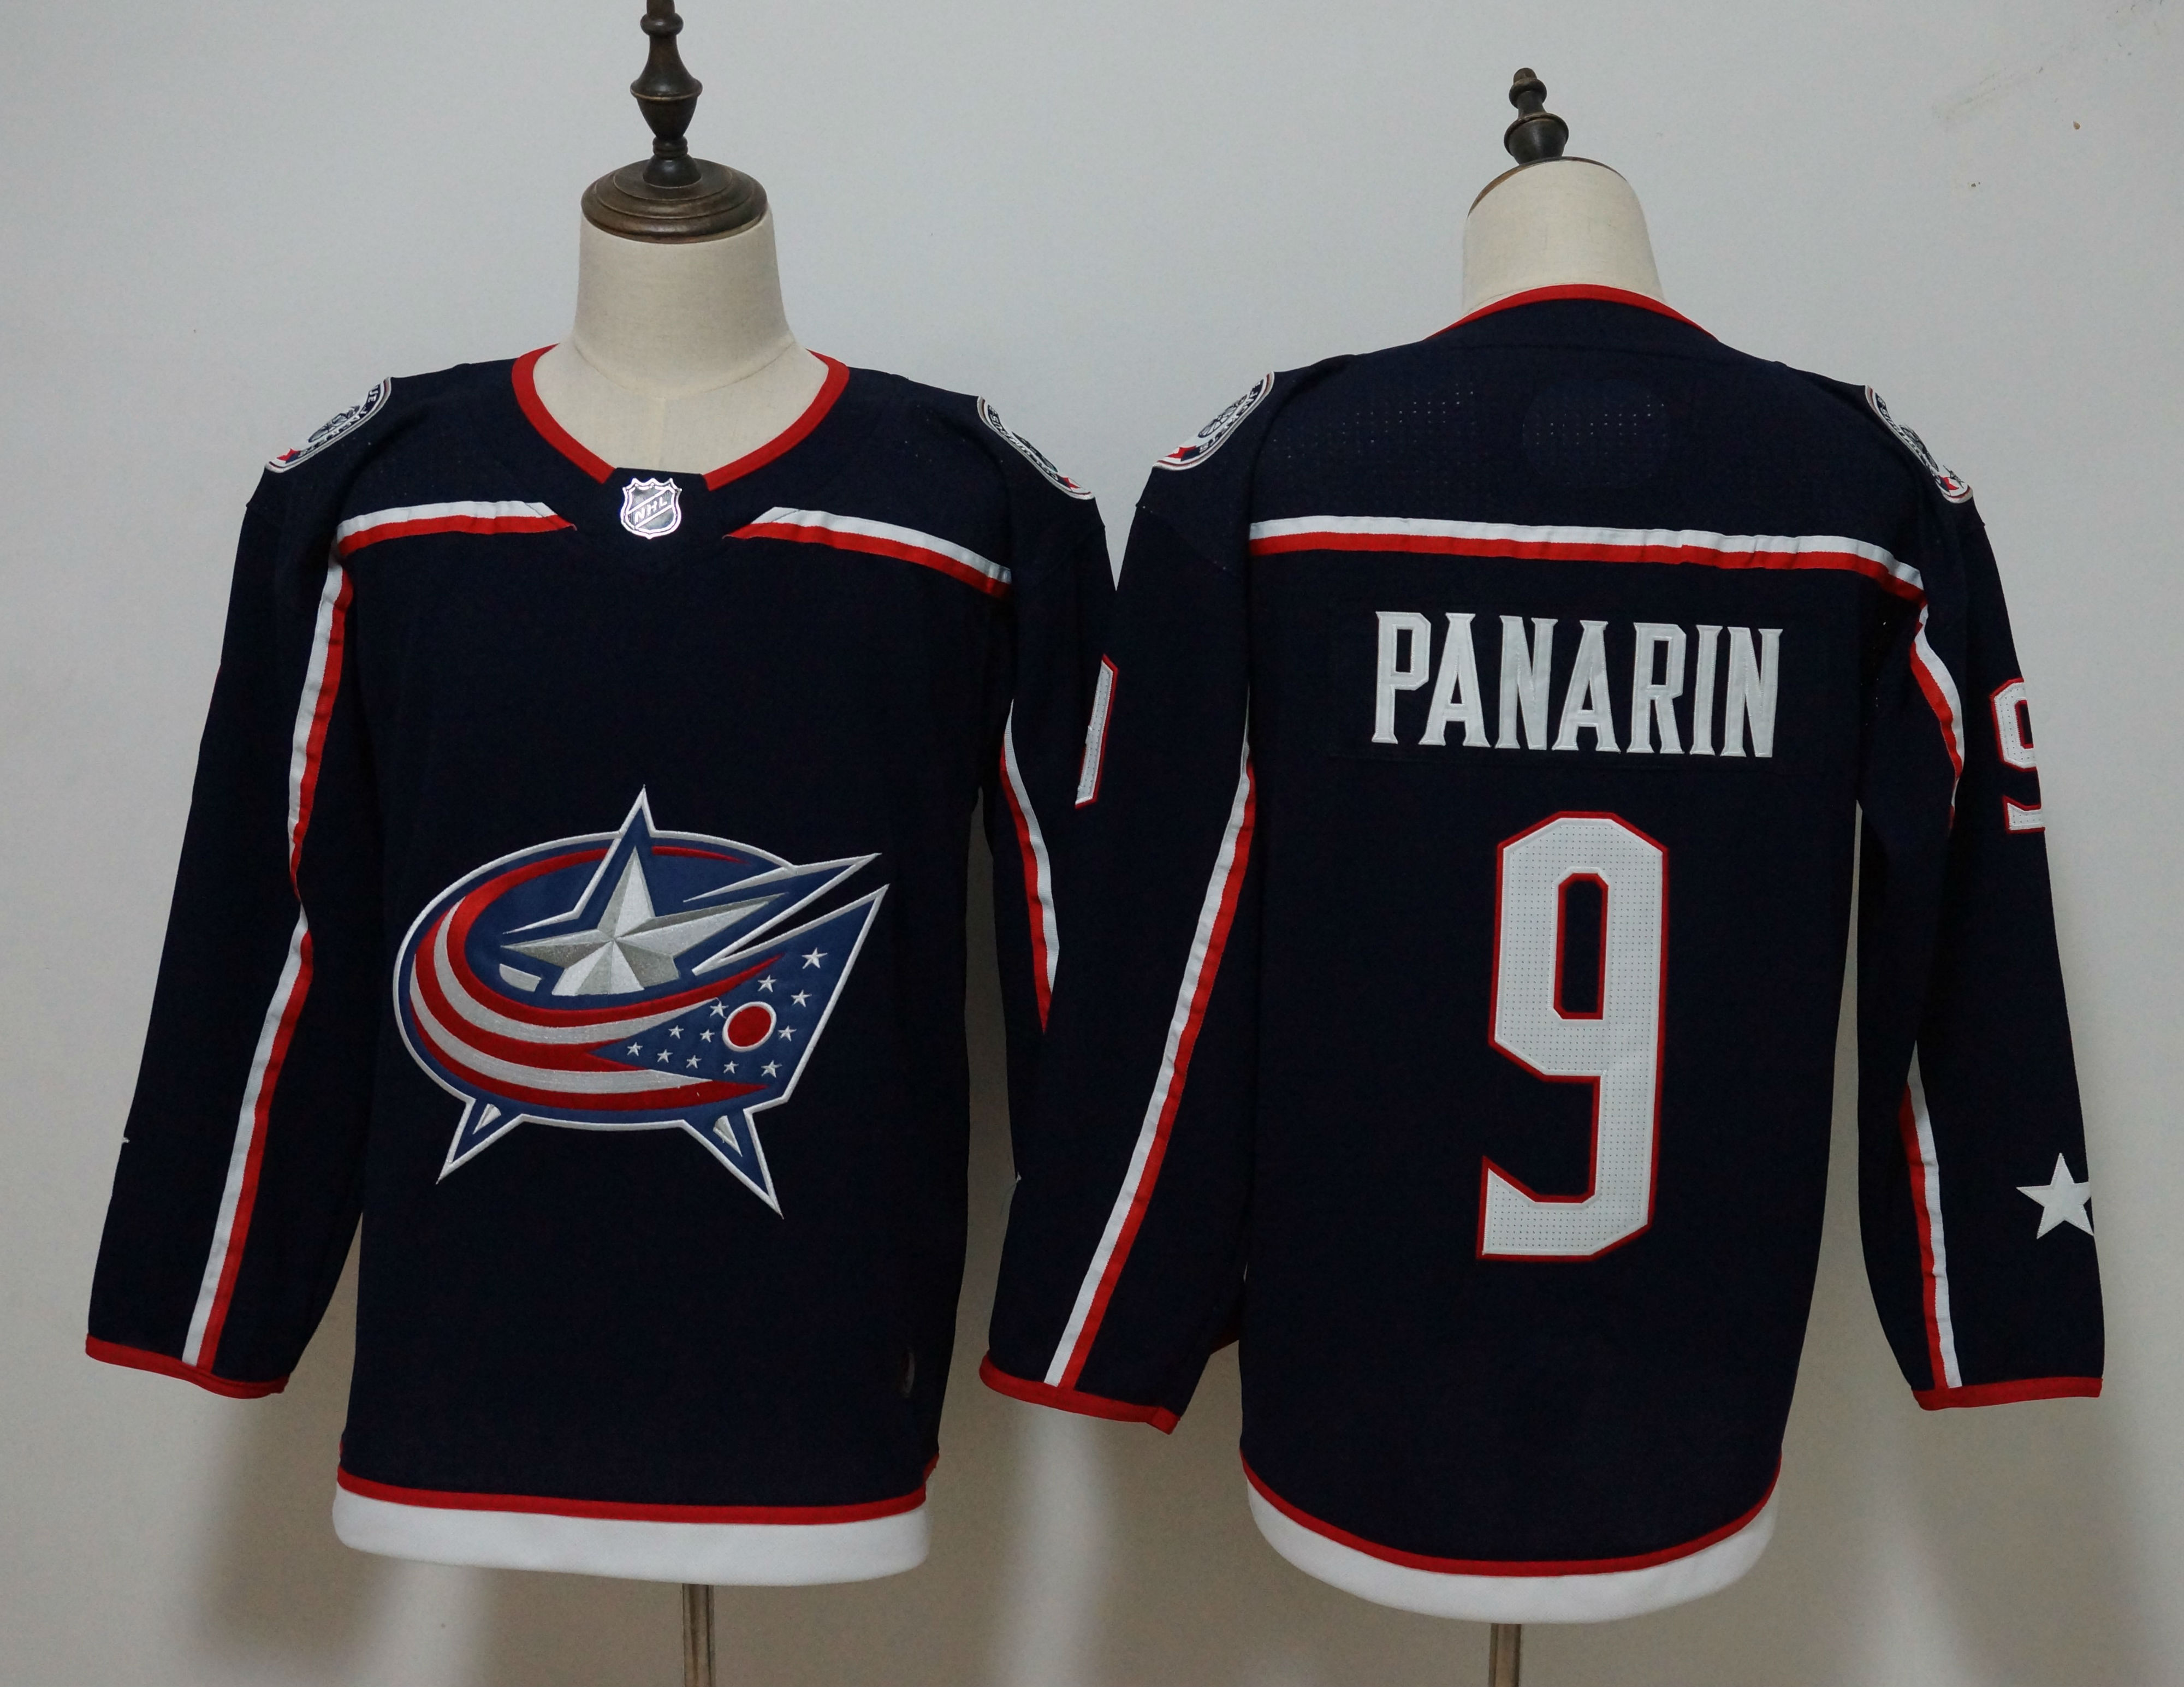 hot sale online d851d 5e952 2019 Mens NHL Columbus Blue Jackets #9 Artemi Panarin Authentic Player  Jersey from Zamboni